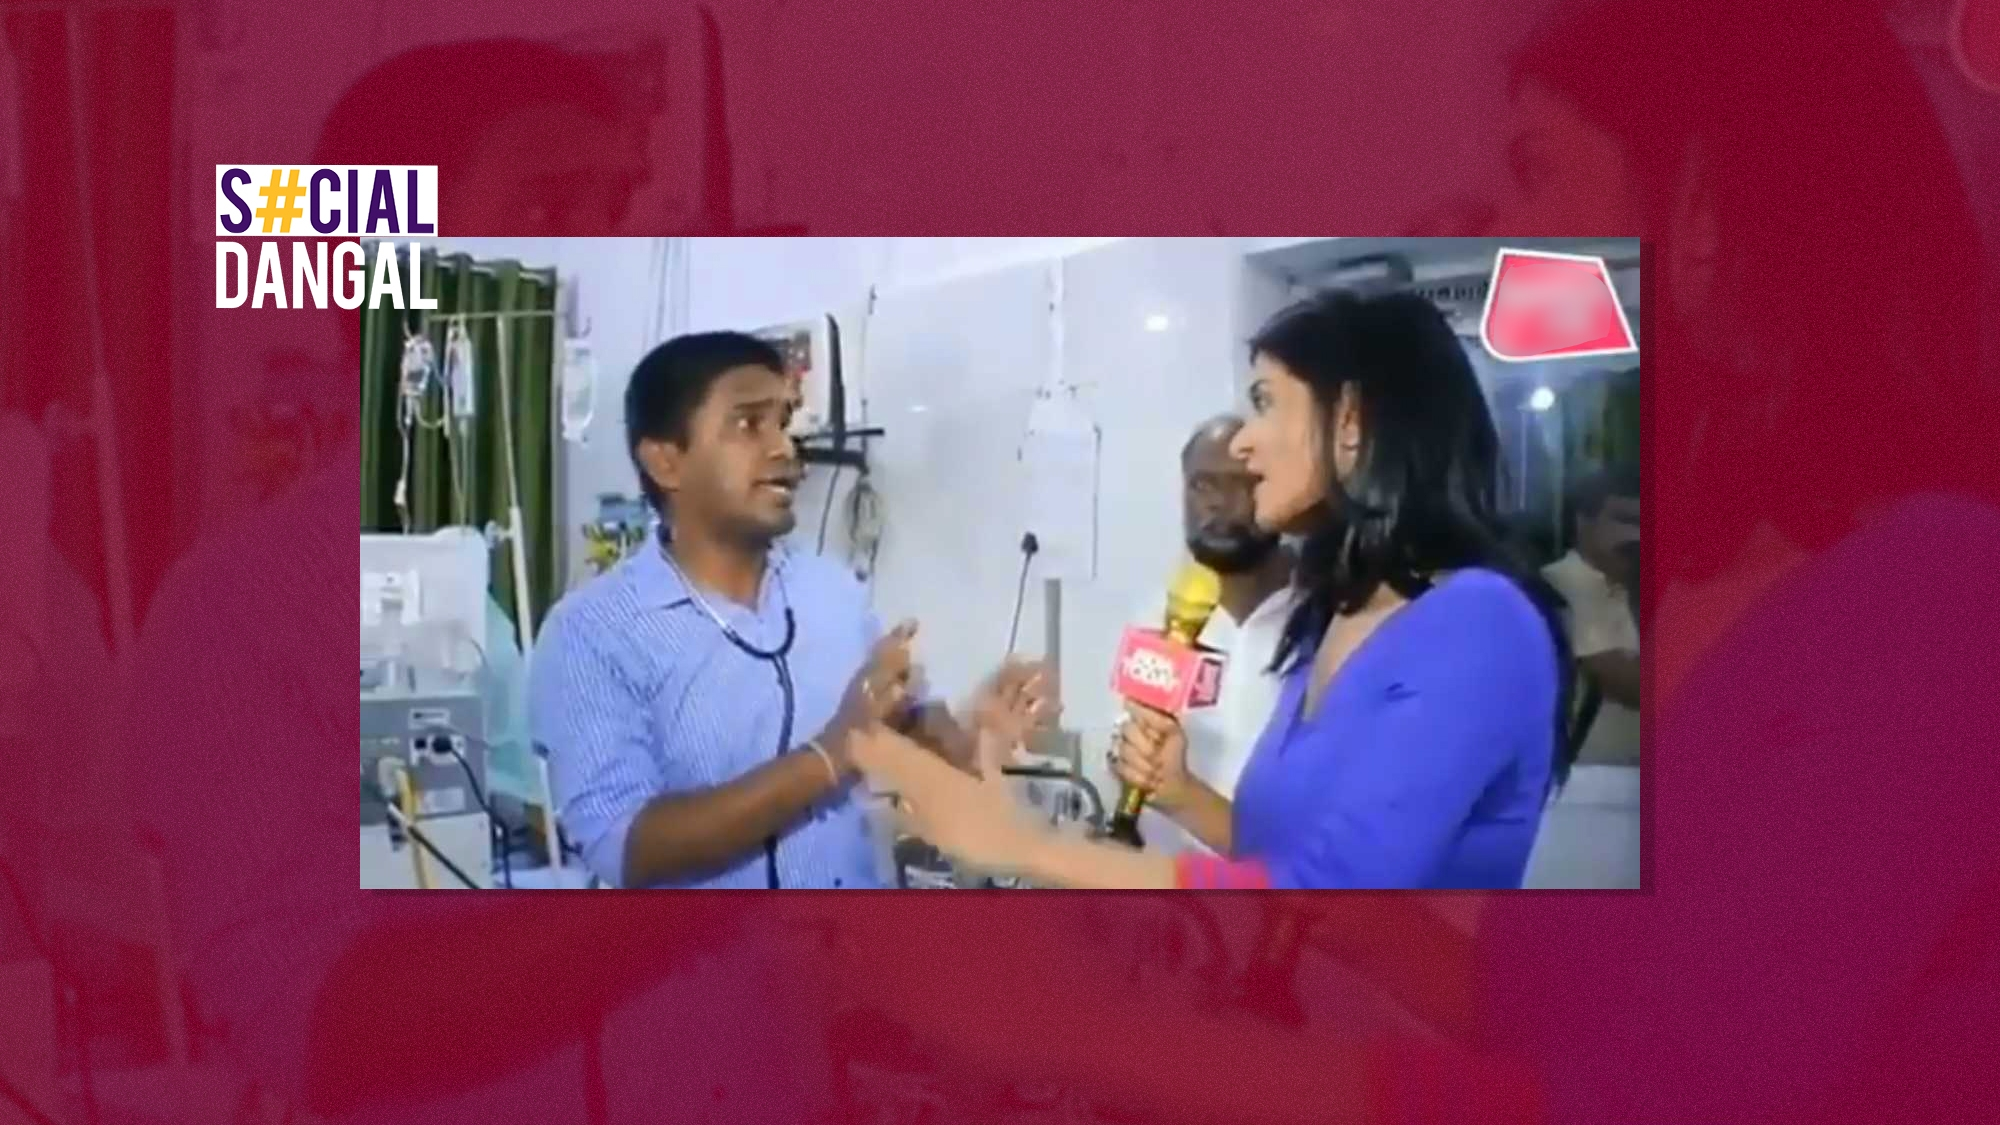 'Why Scold Doctor on Duty?' TV Reporter's ICU Coverage Faces Flak